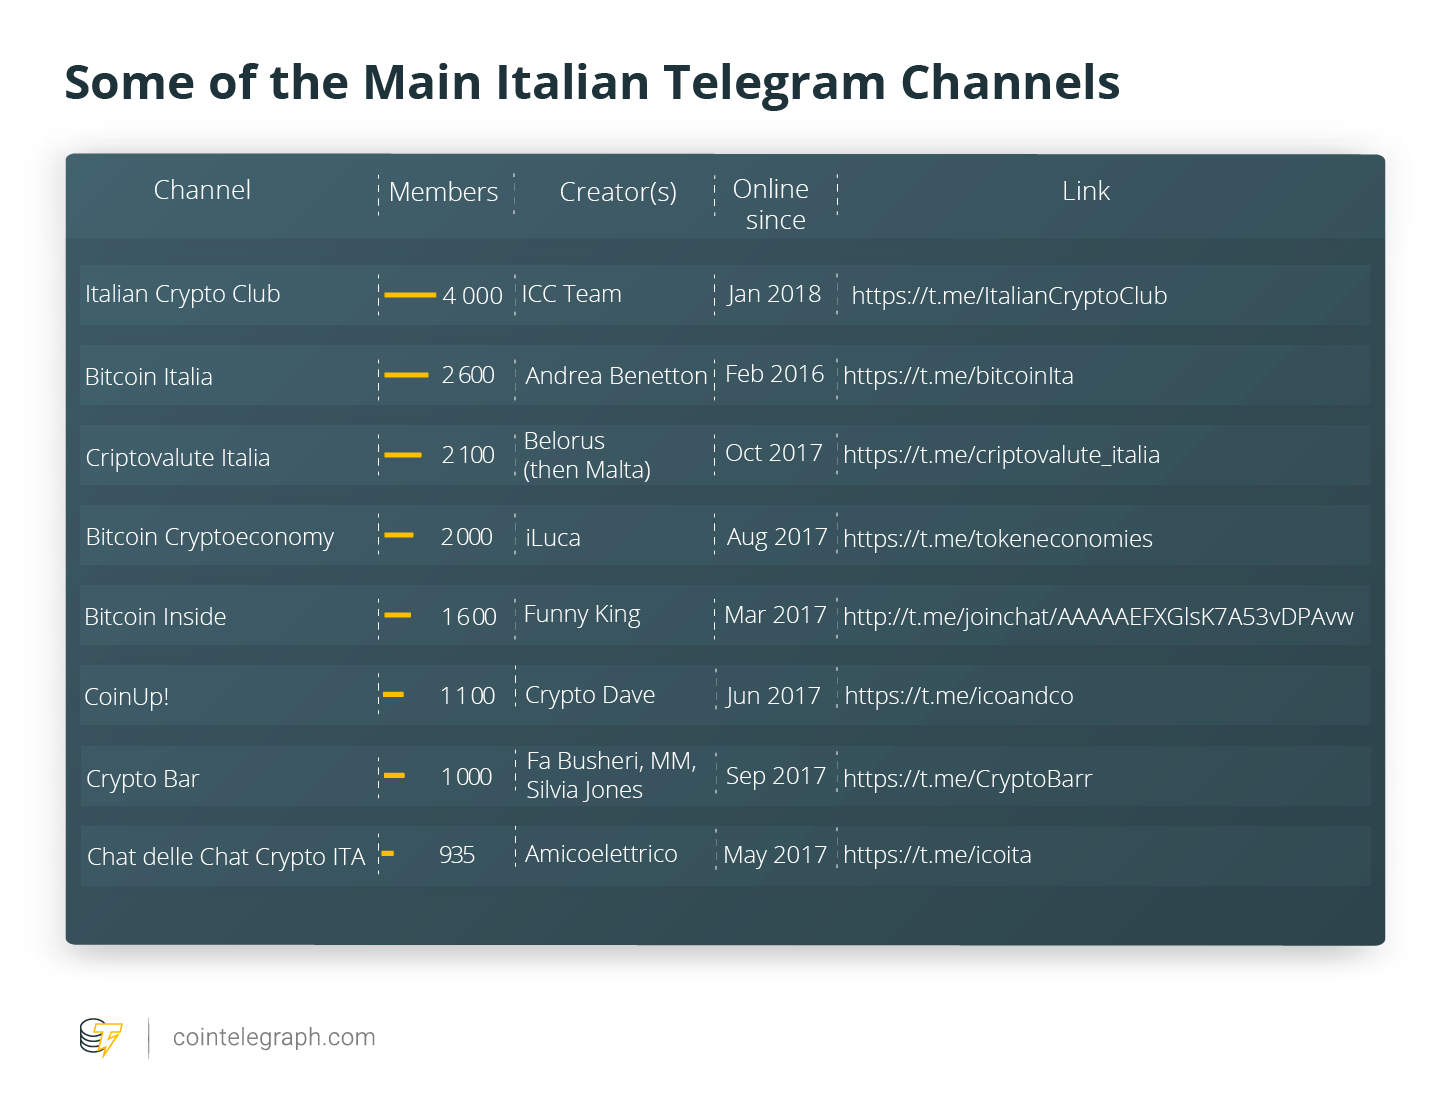 Some of the Main Italian Telegram Channels